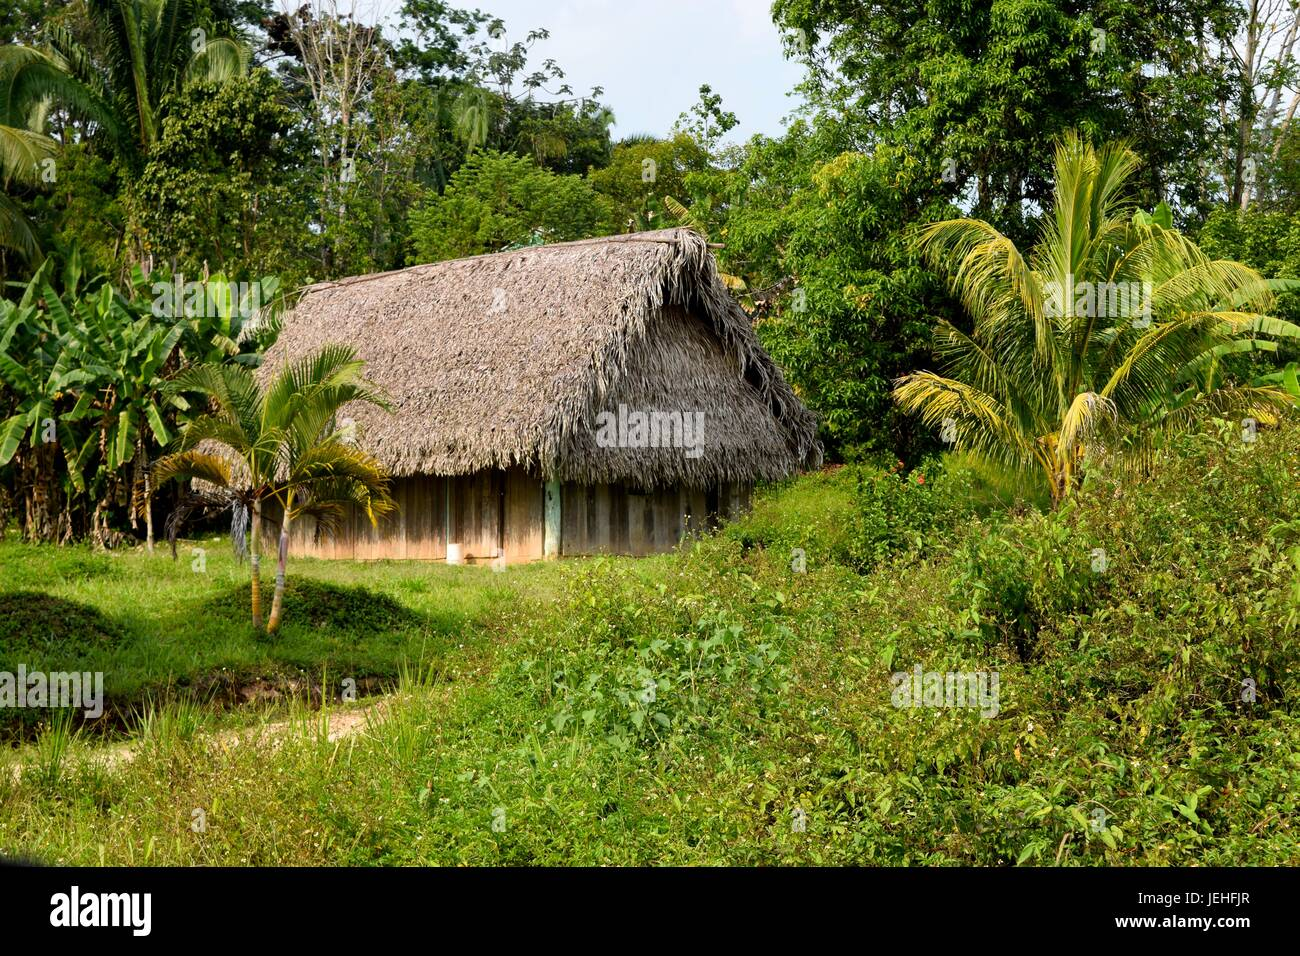 Traditional Mayan house in the Belizean countryside - Stock Image